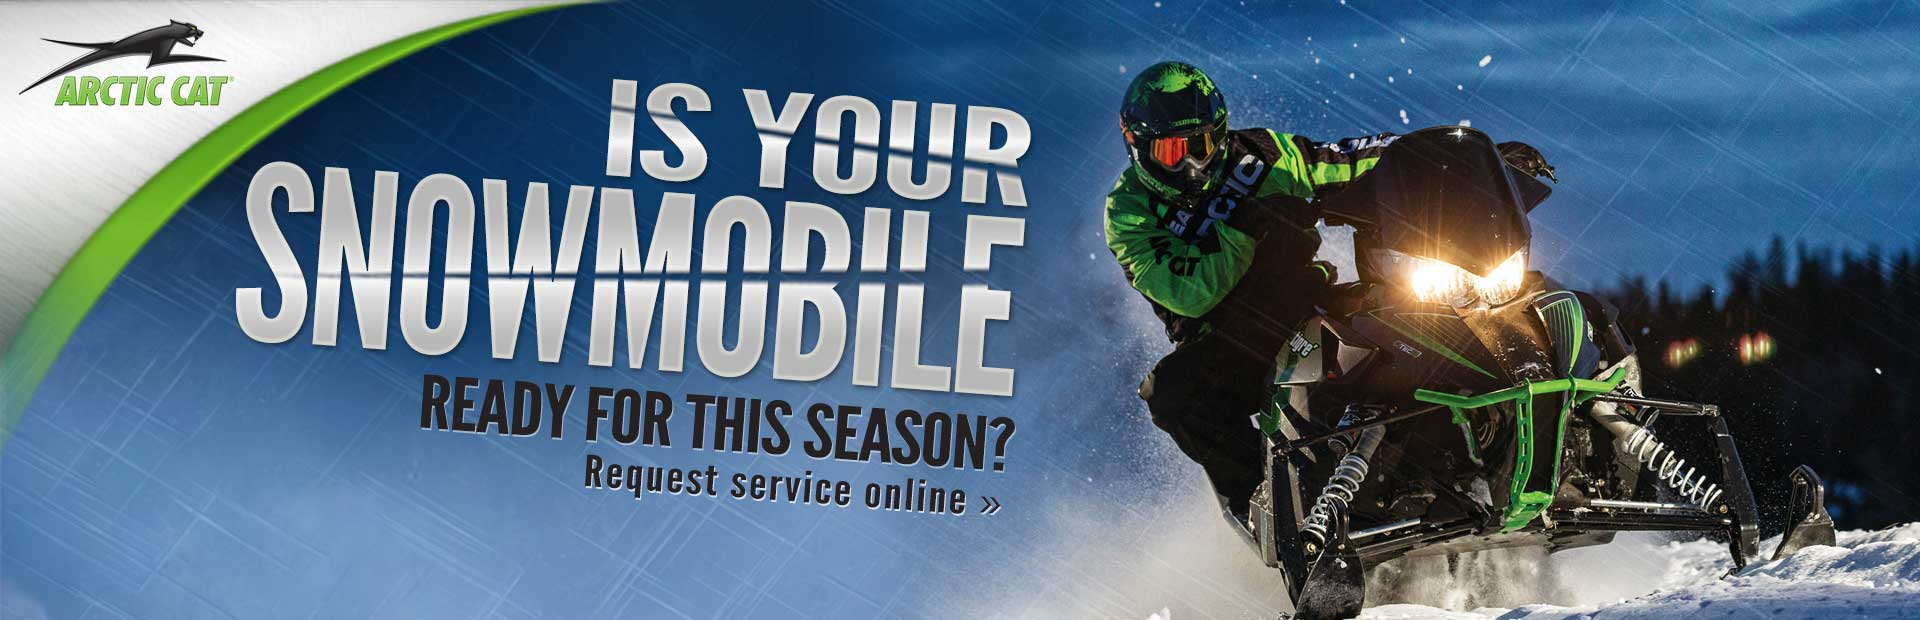 Is your snowmobile ready for this season? Click here to request service.